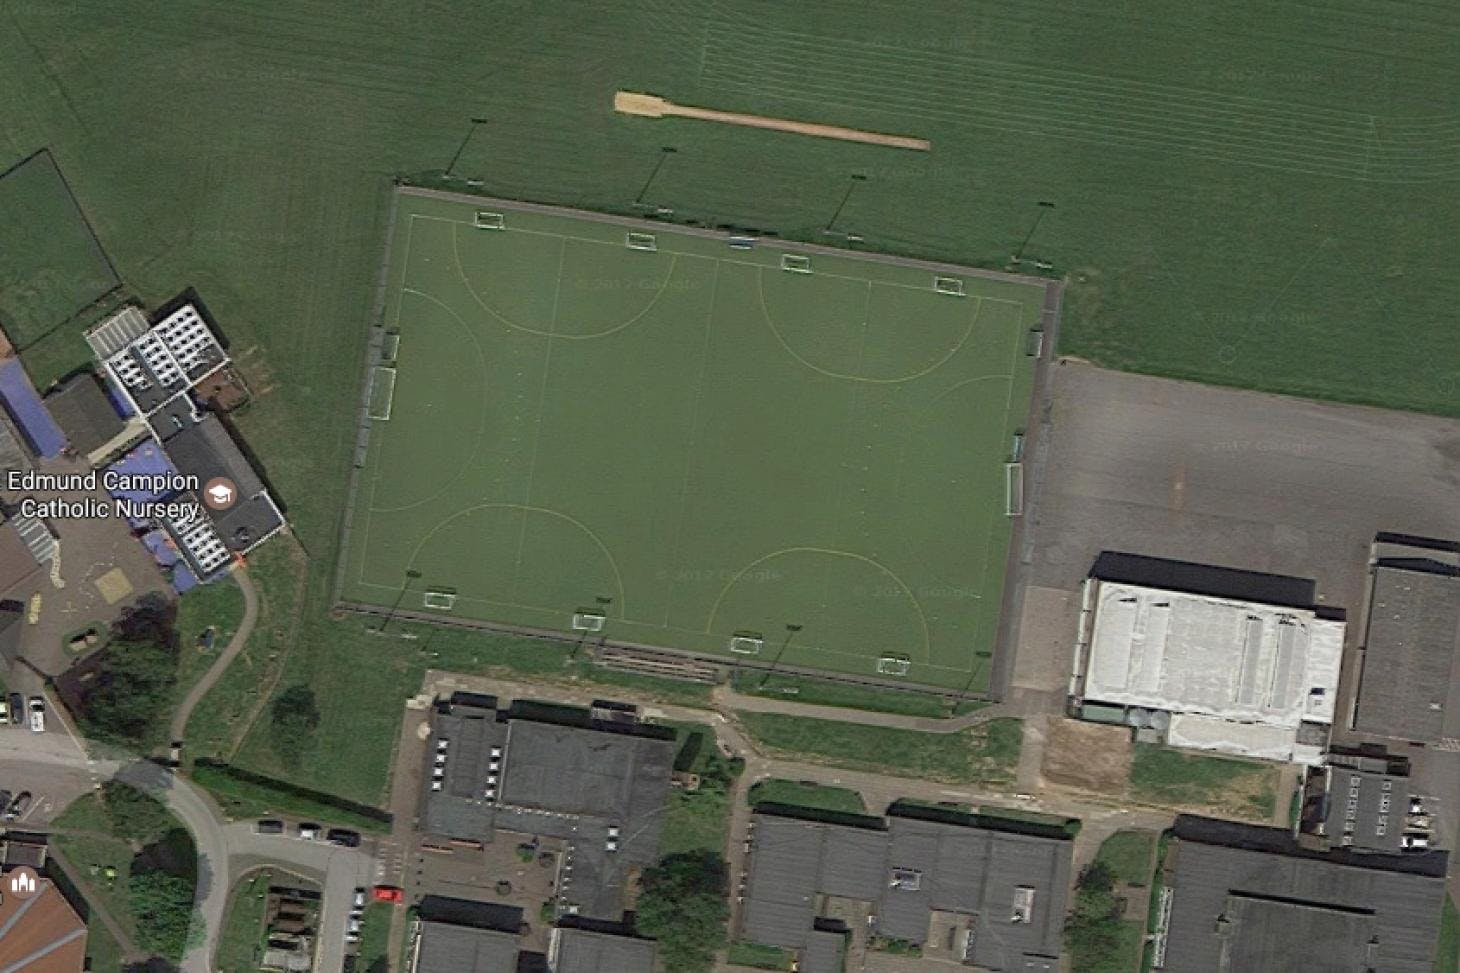 Altwood Church of England School 11 a side | Astroturf football pitch